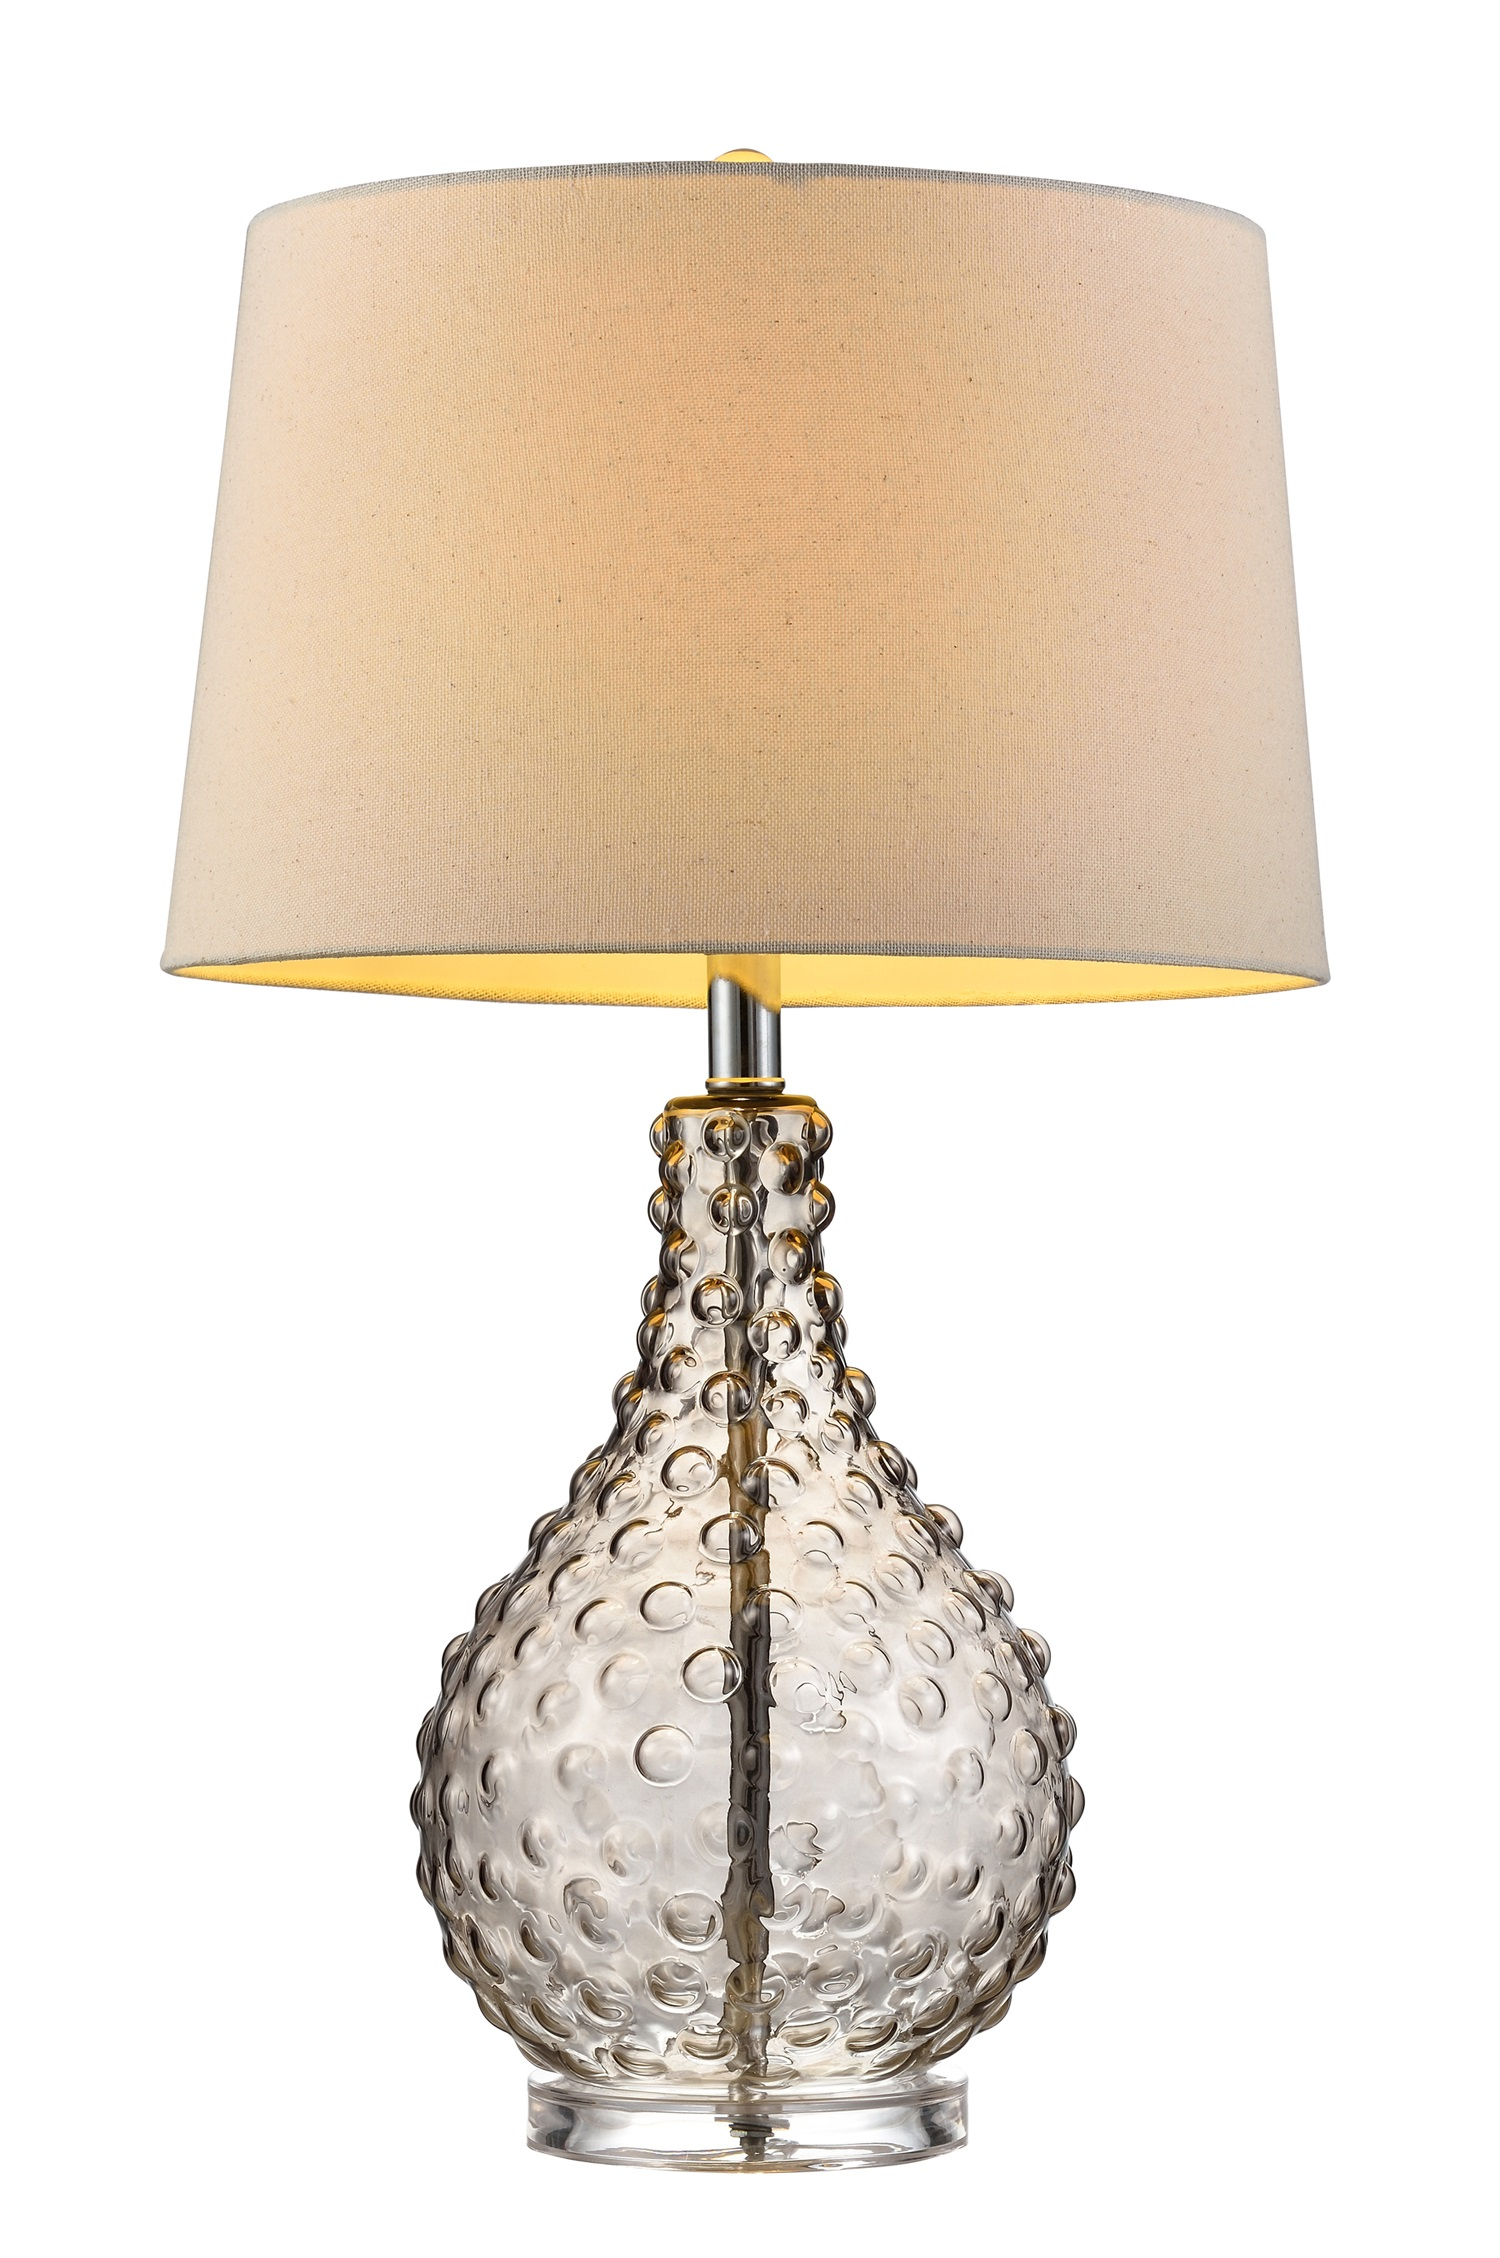 27 Tall Glass Table Lamp Castlerock With Clear Glass Finish